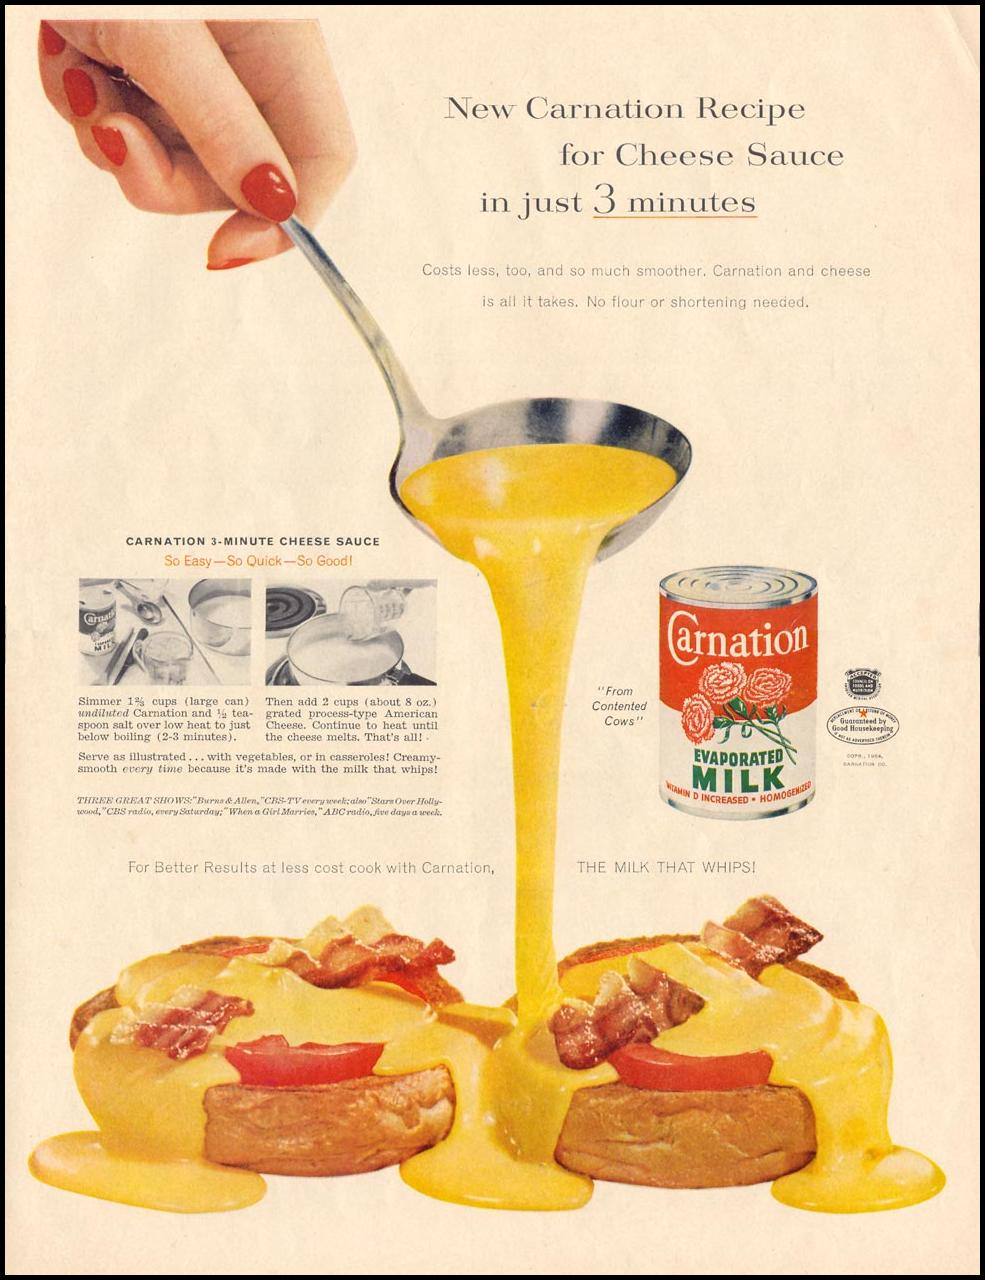 CARNATION EVAPORATED MILK LIFE 07/12/1954 p. 37